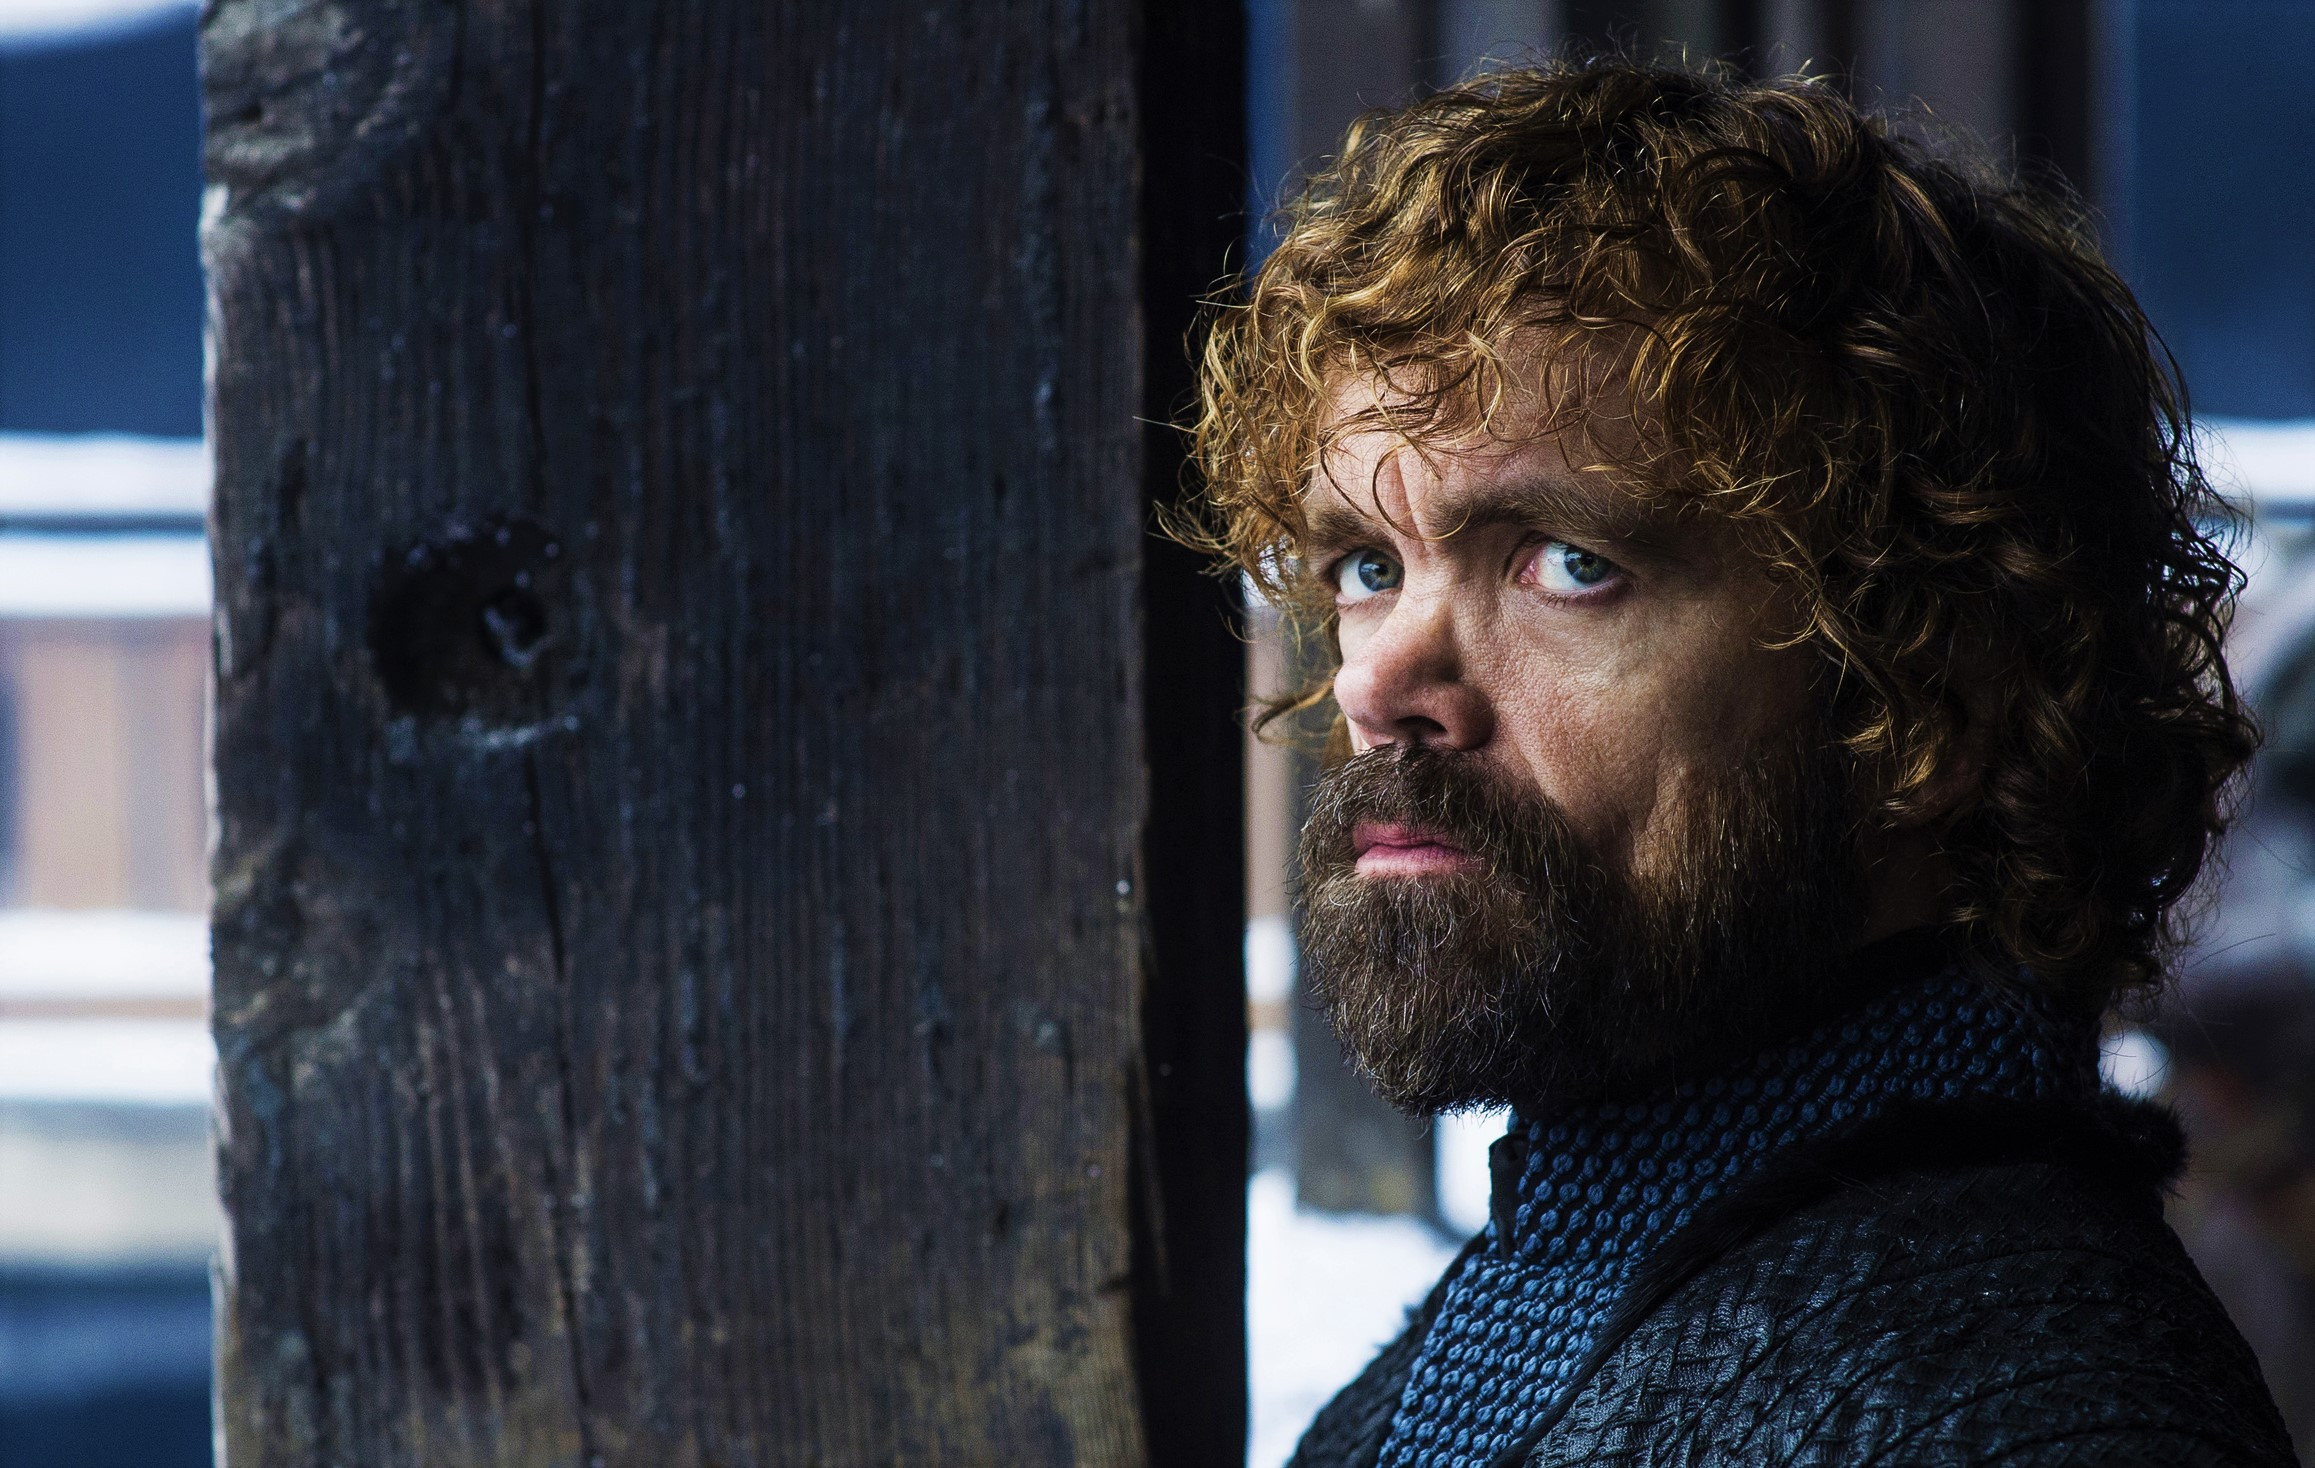 Game of Thrones season 8: Tyrion will meet an unlikely friend from Season 2